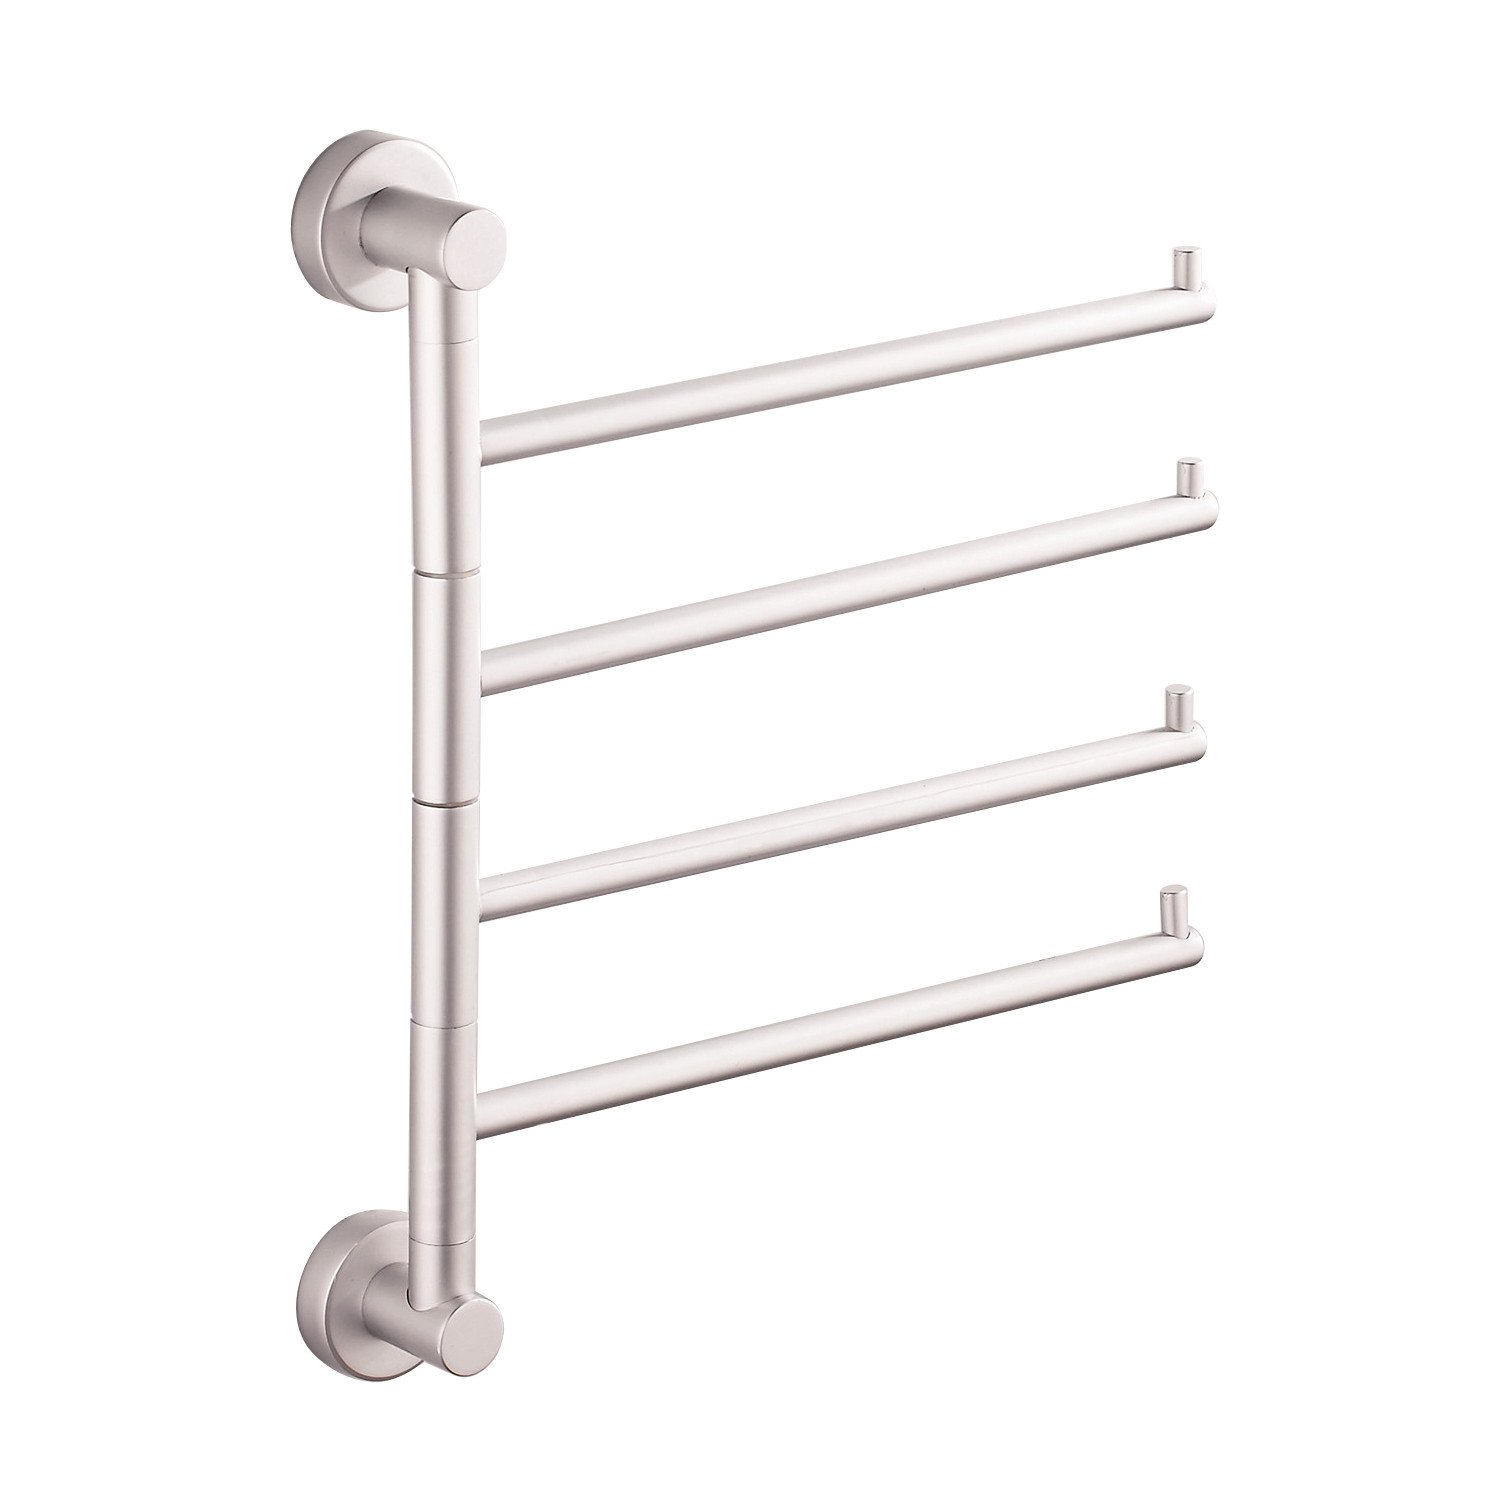 SOQO Adjustable Bathroom Bath Towel Bar wall mounted towel bar Swing Face Towel Rack Space Rustproof Wall Mount Holder (4Bars, Aluminum) by SOQO